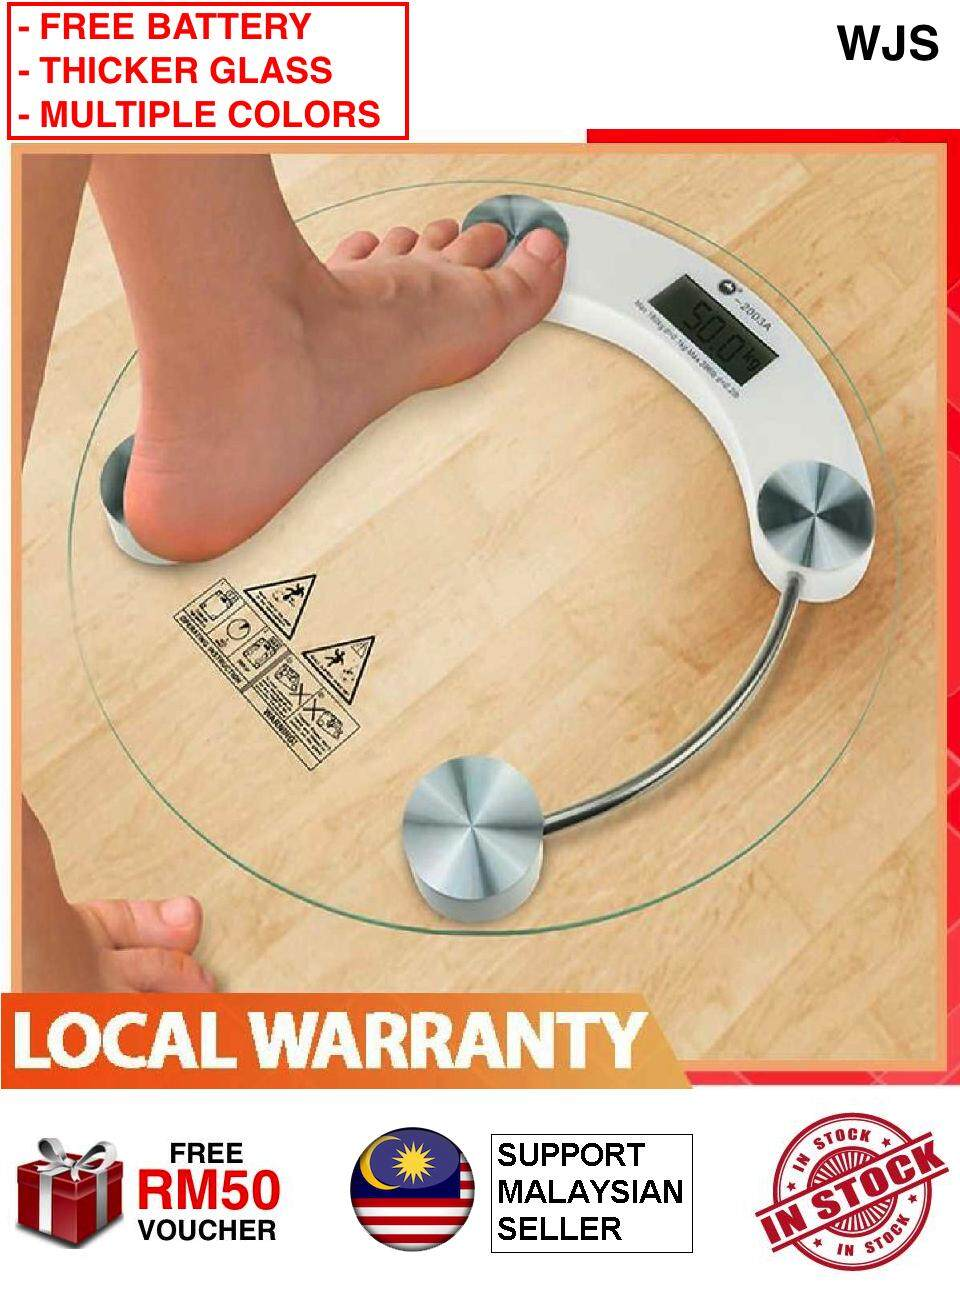 (FREE BATTERY + EXTRA THICK) WJS Multiple Colors 33cm Premium Thicker Glass Digital Scale Transparency High Quality Weighing Scale Weight Weighting Digital WHITE BLUE PINK [FREE RM 50 VOUCHER]